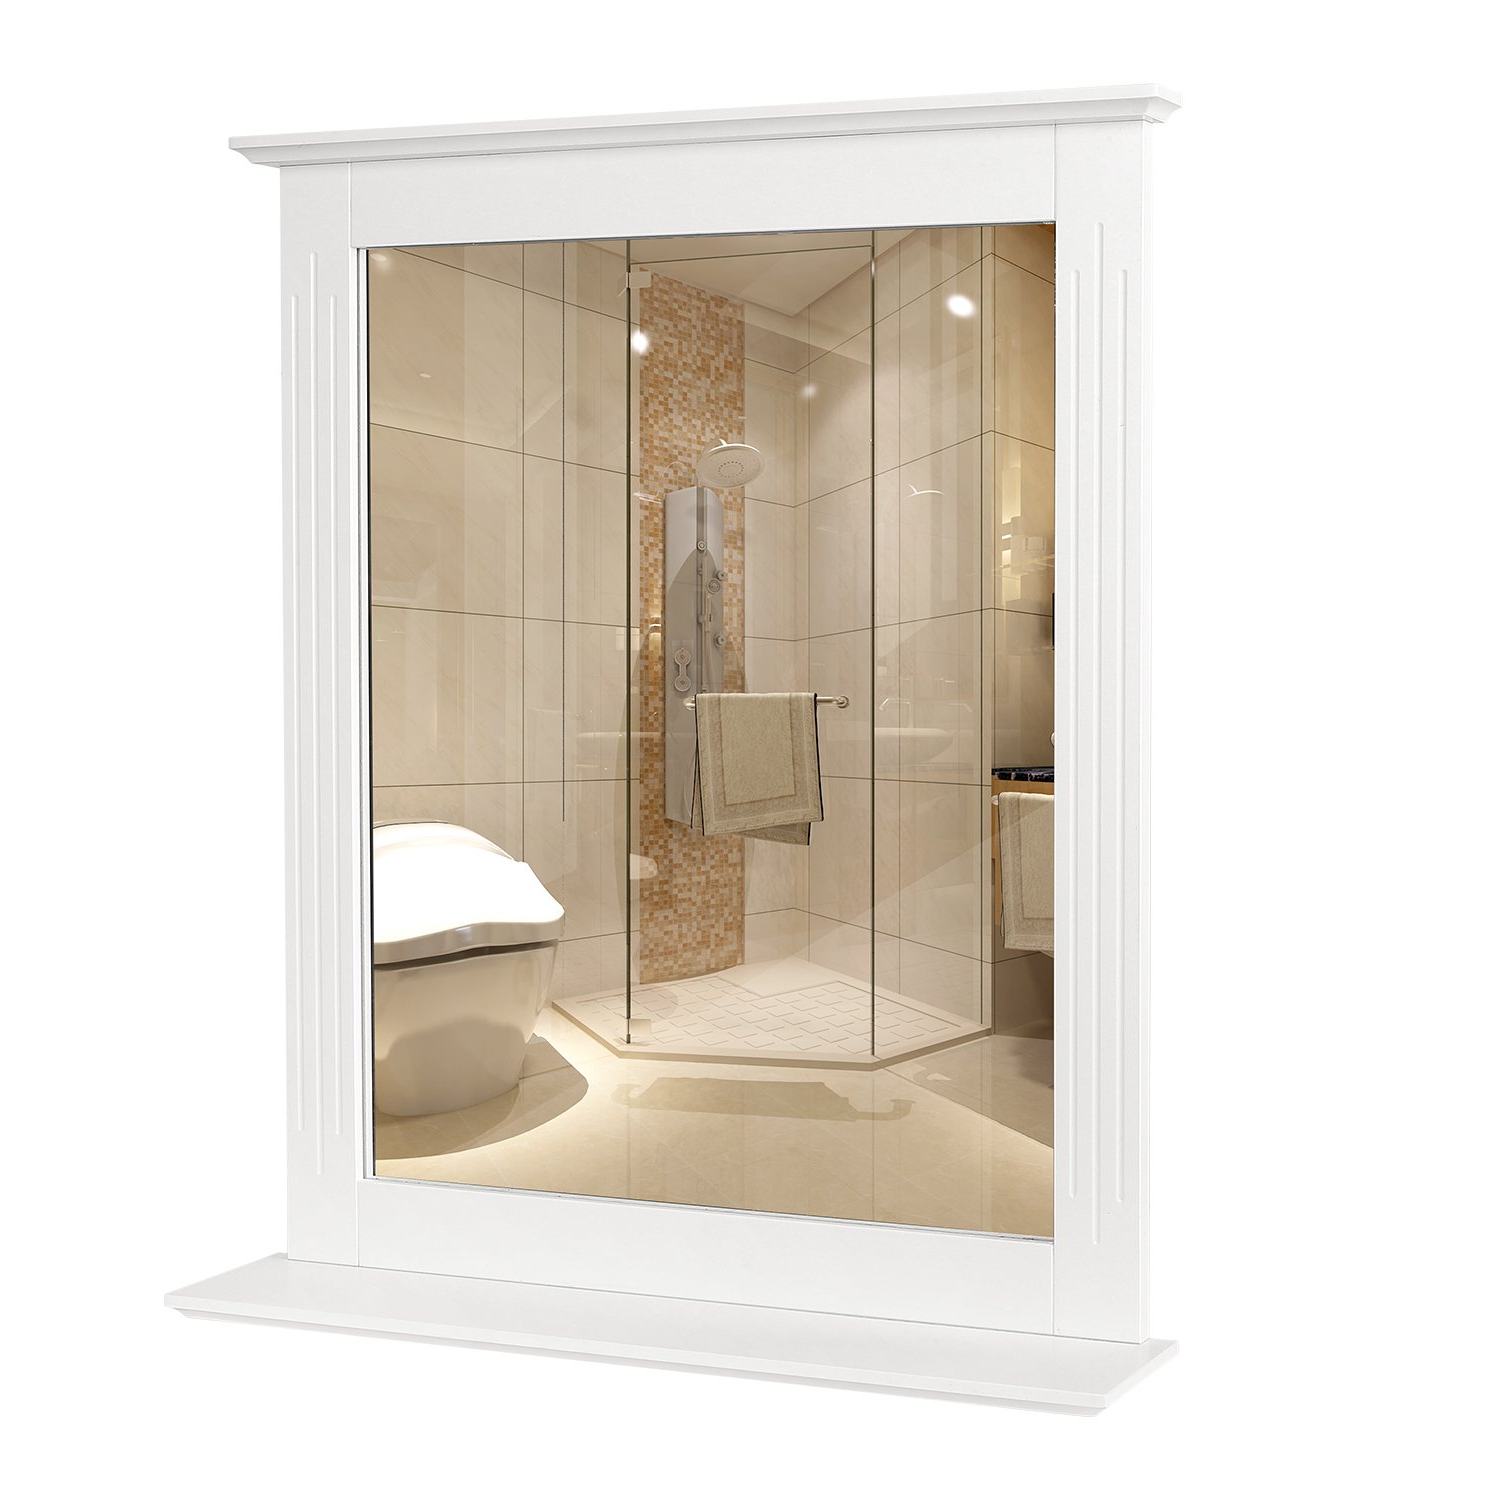 Popular Bath Wall Mirrors Pertaining To Homfa Bathroom Wall Mirror Vanity Mirror Makeup Mirror Framed Mirror With Shelf For Home Multipurpose White (View 8 of 20)